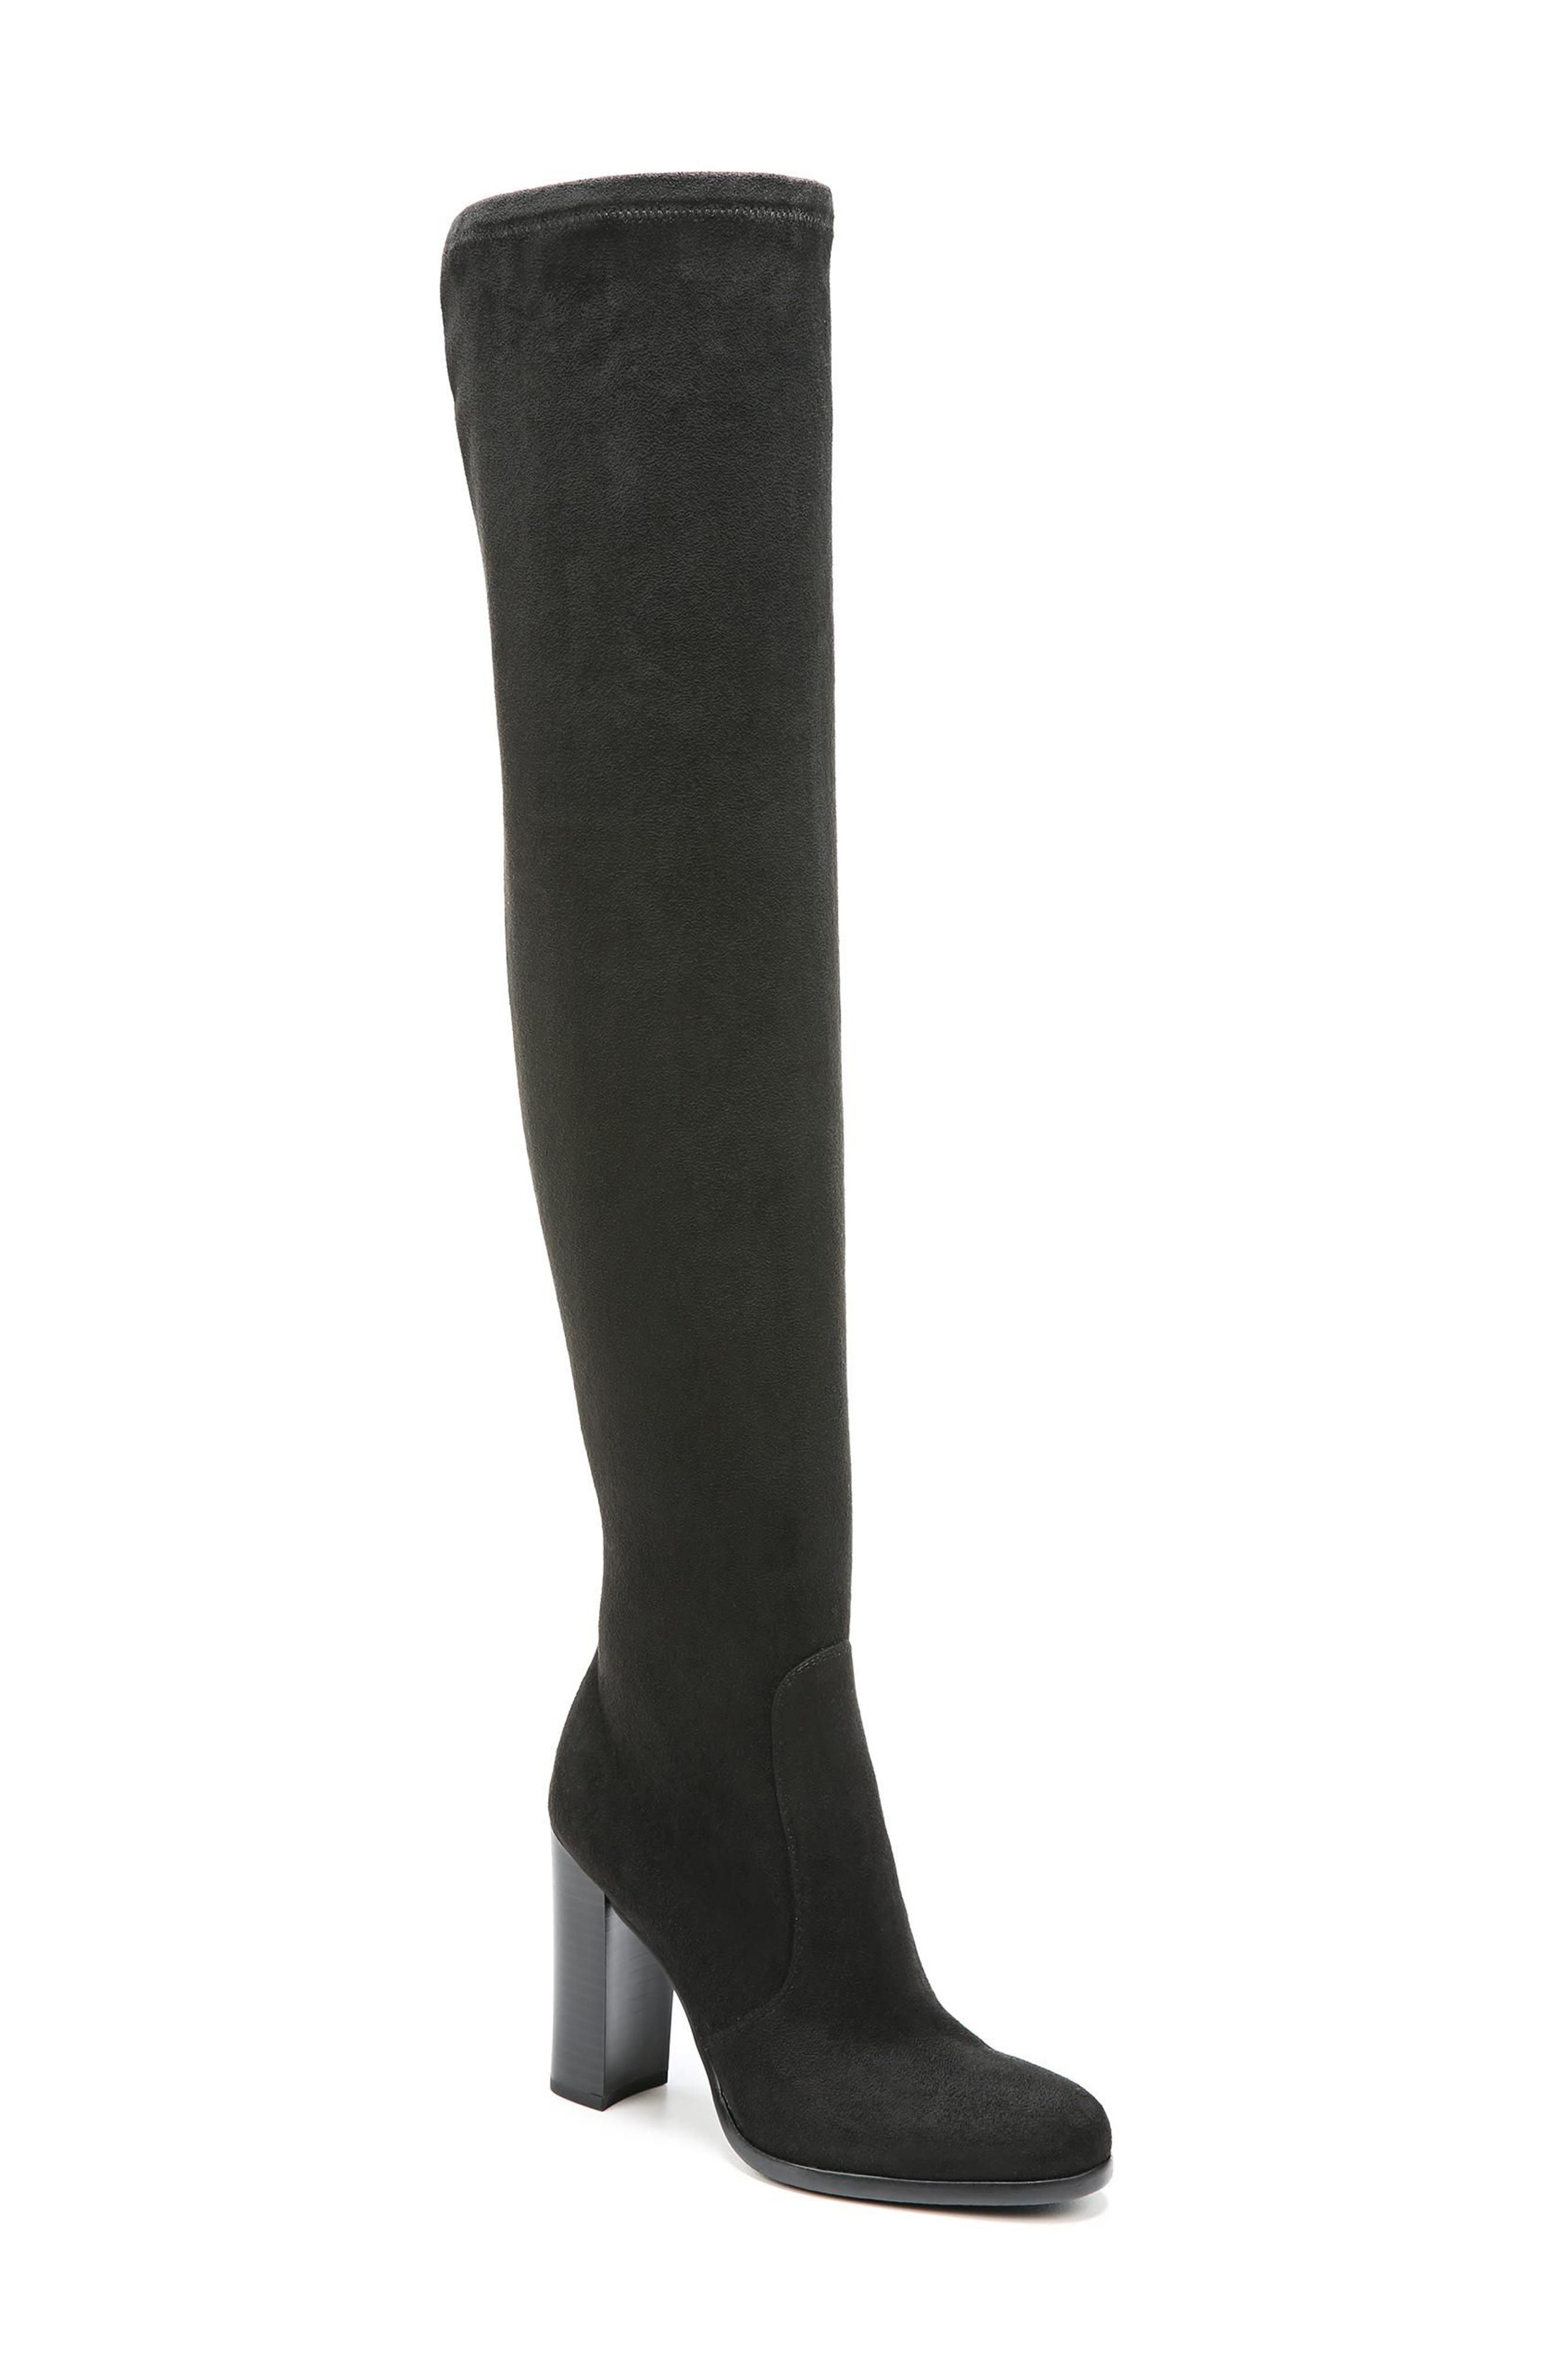 Vena 2 Over the Knee Boot,                         Main,                         color, 002